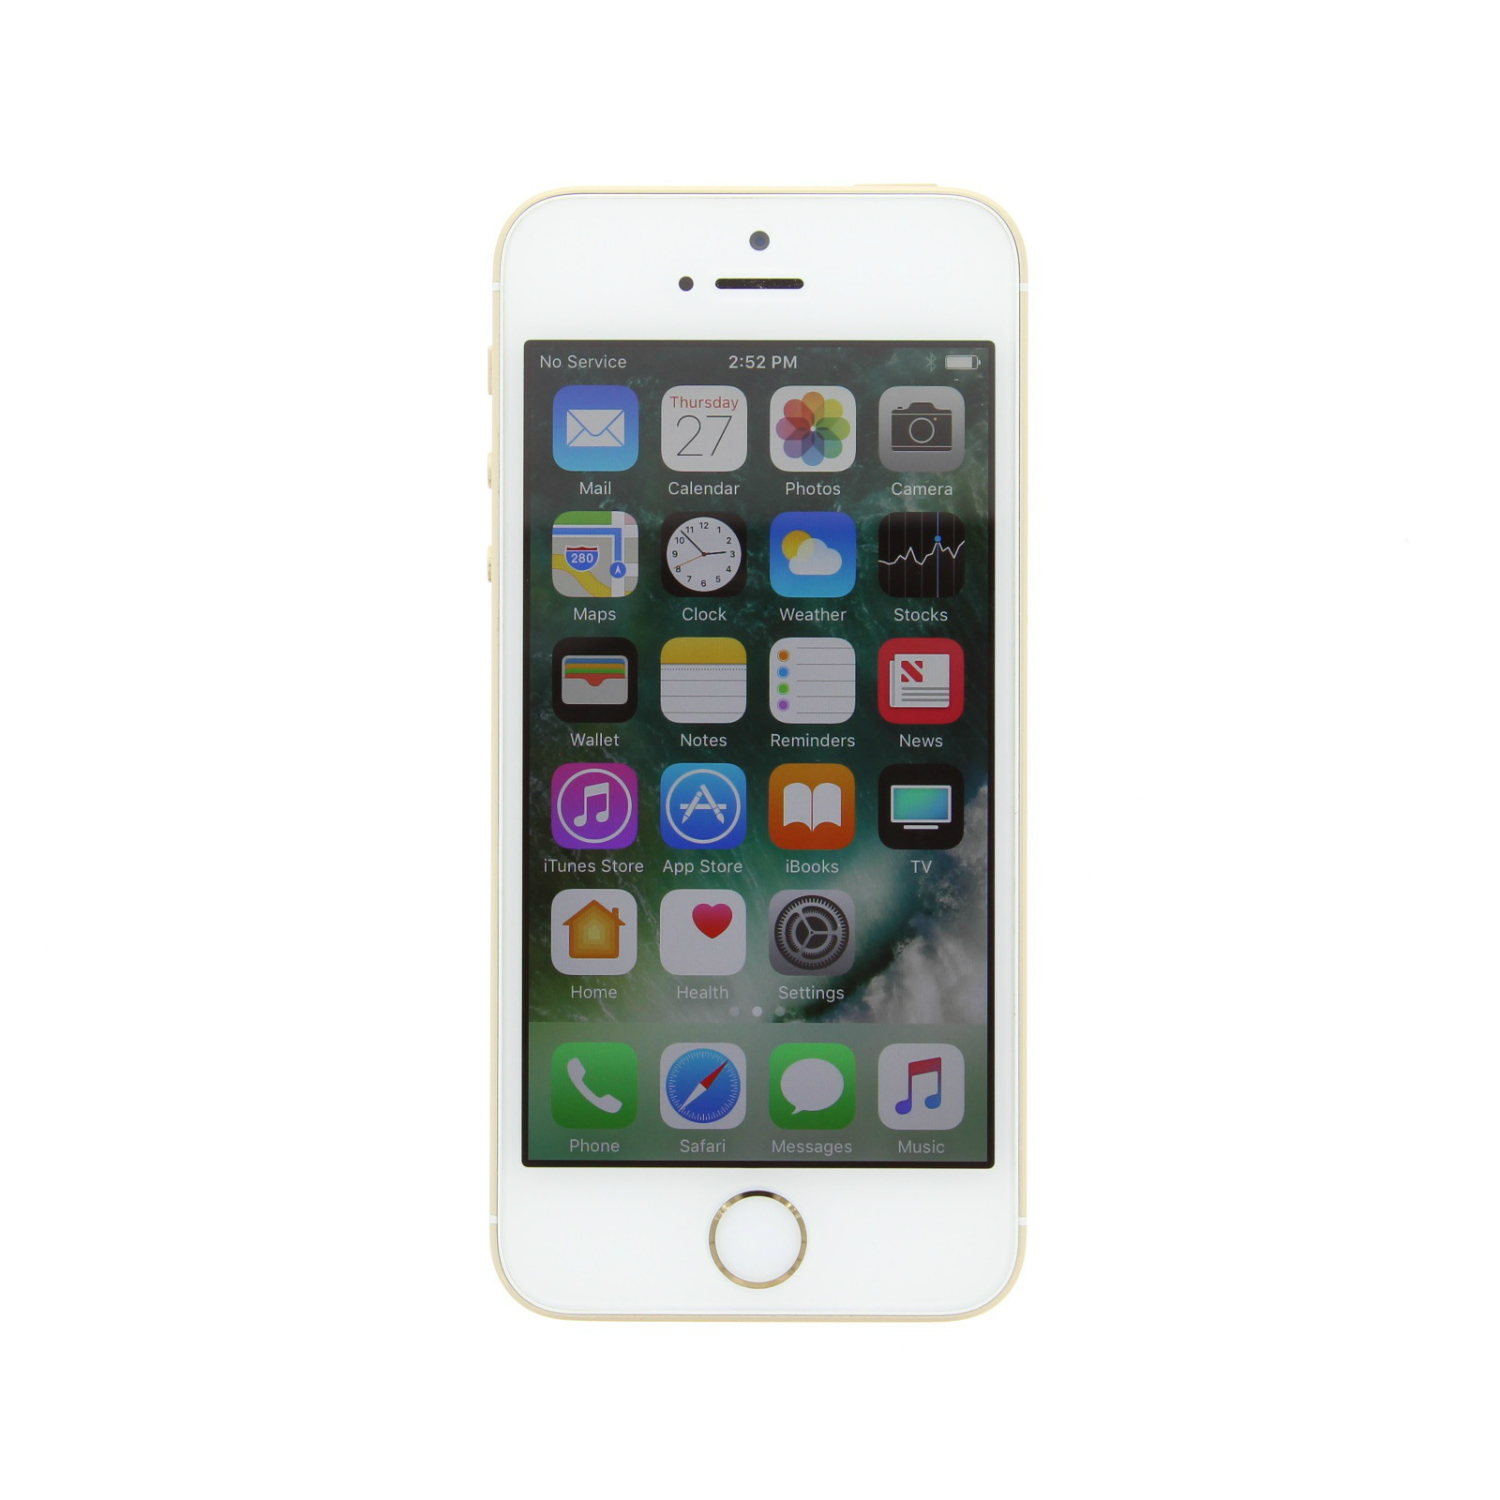 cheap iphone 5c unlocked 27674 iphone 5c unlocked cheap 220805 fresh iphone 5c 13791